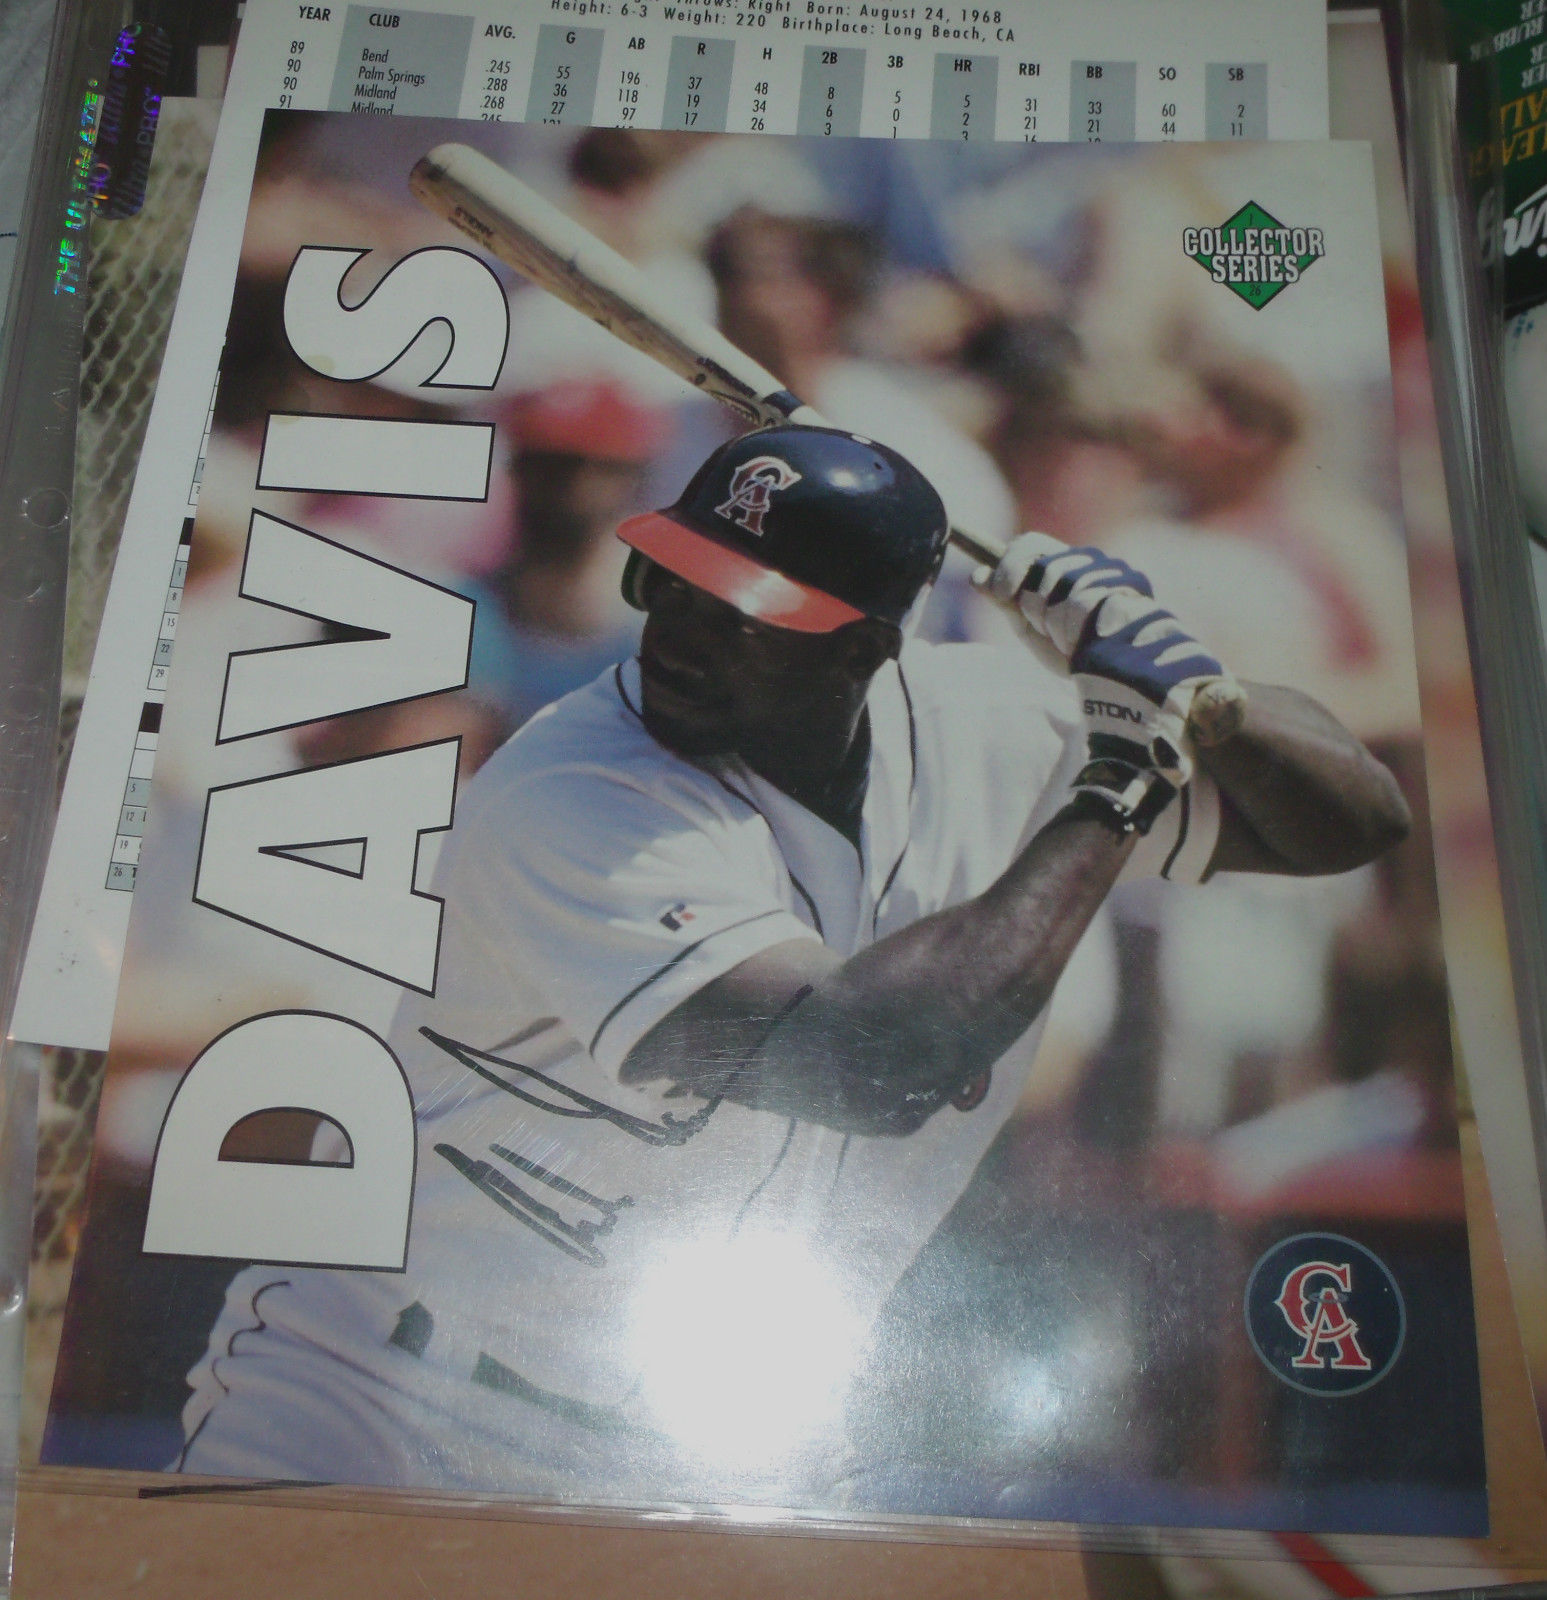 CHILI DAVIS HAND SIGNED 7X9 PHOTO ANGELS BASEBALL